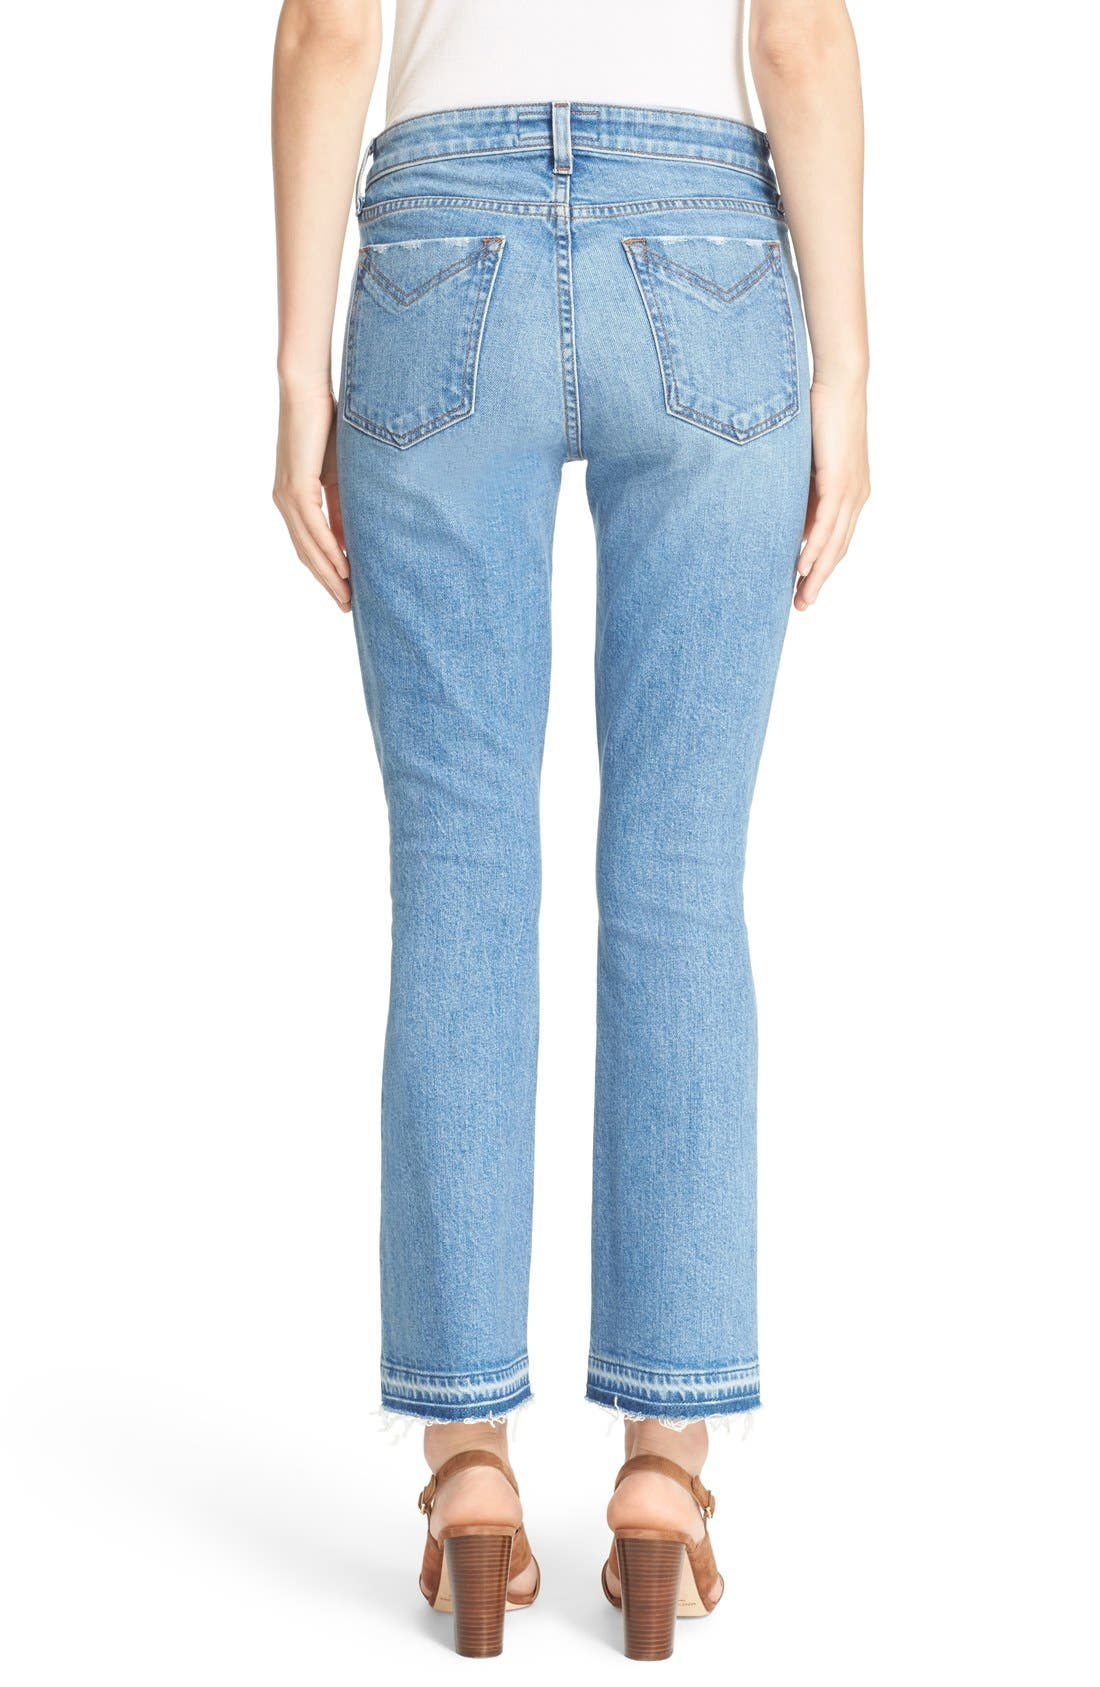 'Gia' Crop Flare Jeans,                             Alternate thumbnail 3, color,                             458